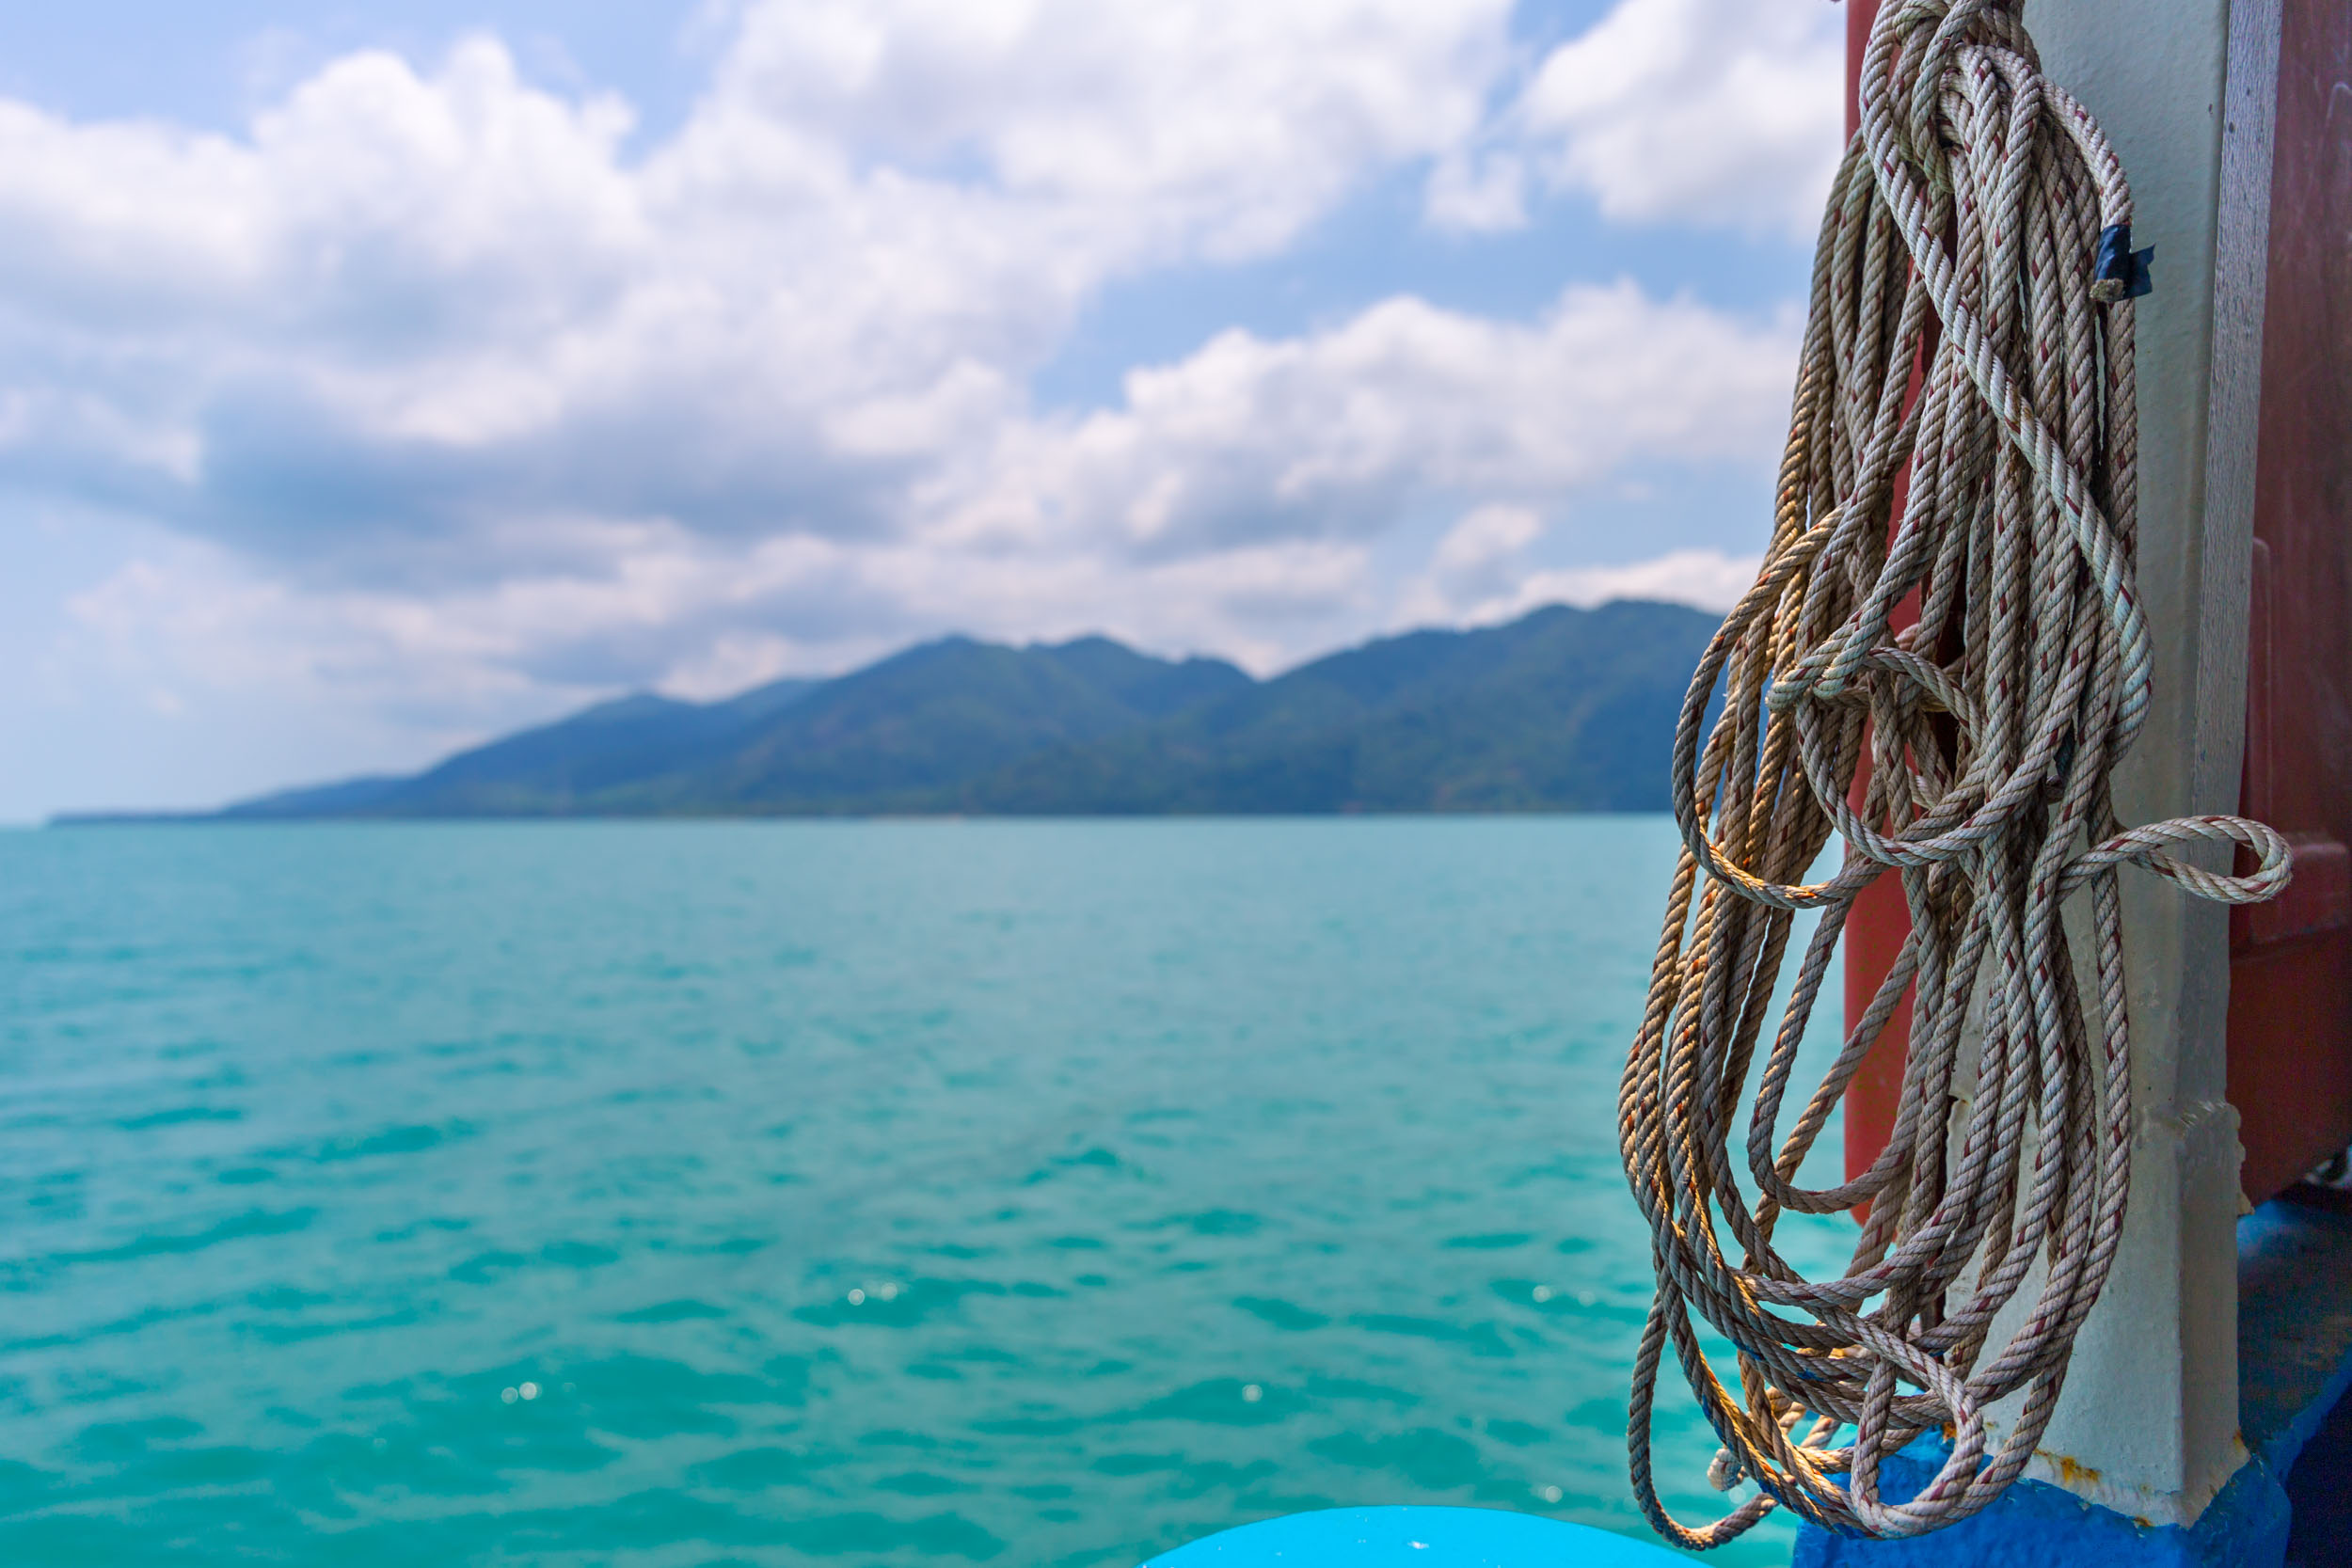 Travel Photo - Koh Chang Ferry Crossing